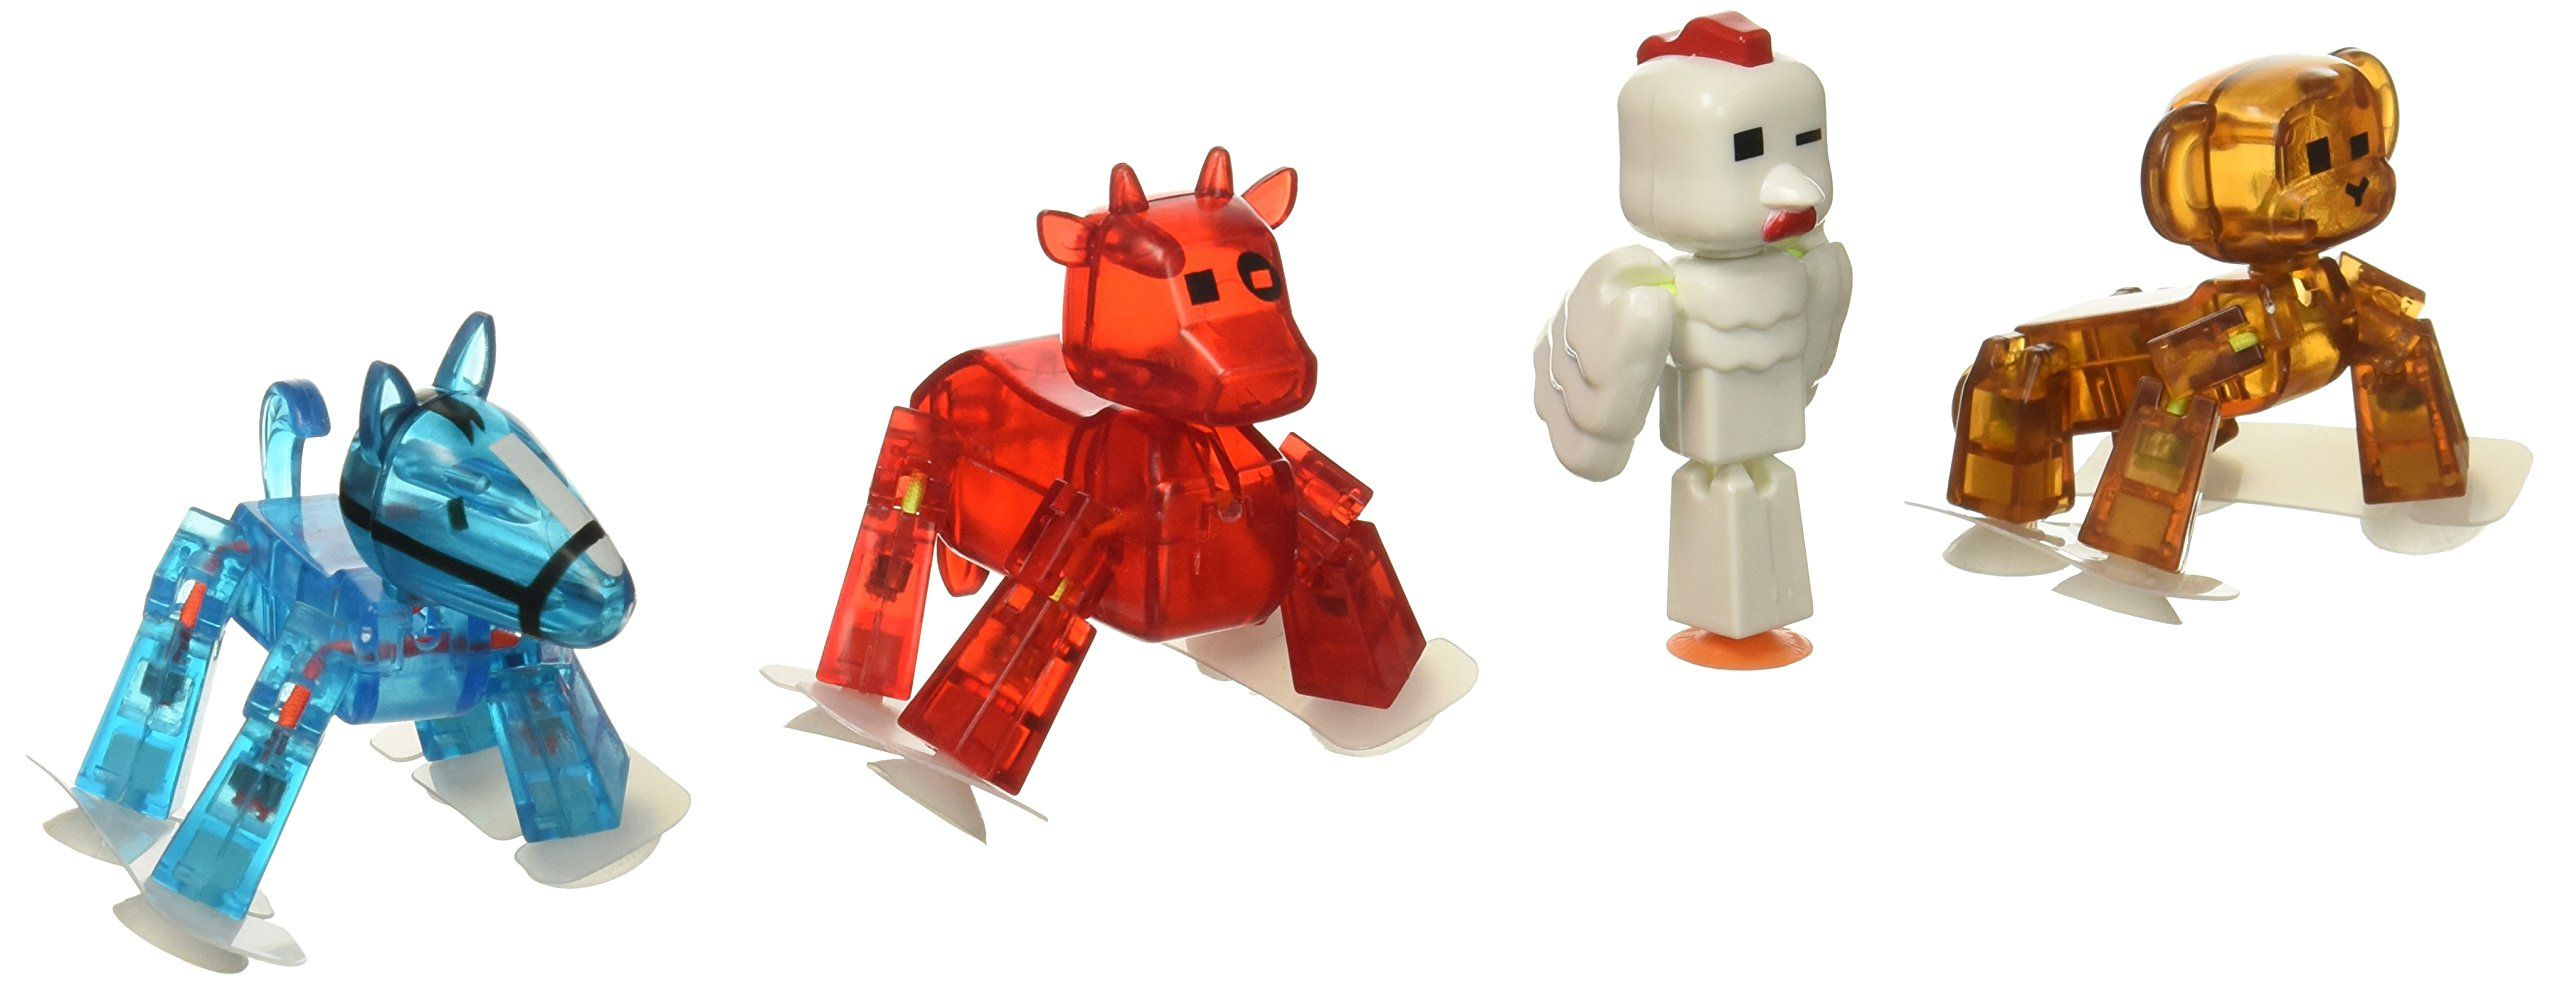 Zing Stikbot 4 x Pets Monkey, Horse, Cow, Chicken